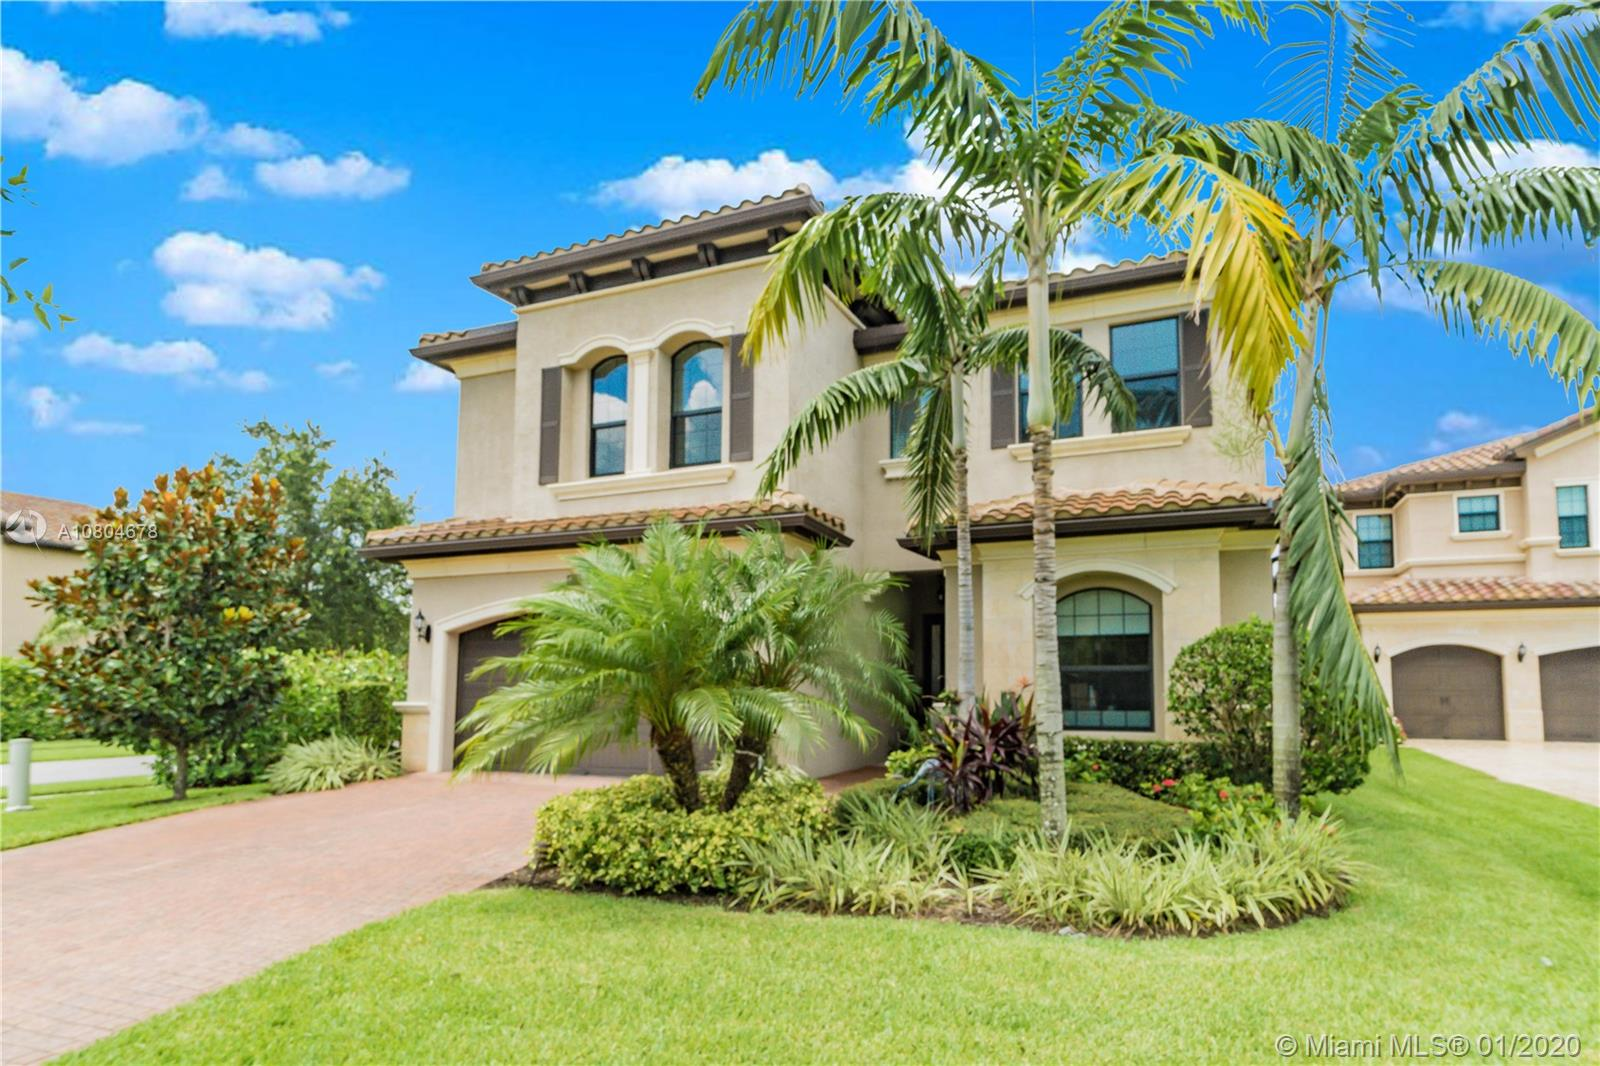 16920 Bridge Crossing Cir, Delray Beach, FL 33446 - Delray Beach, FL real estate listing